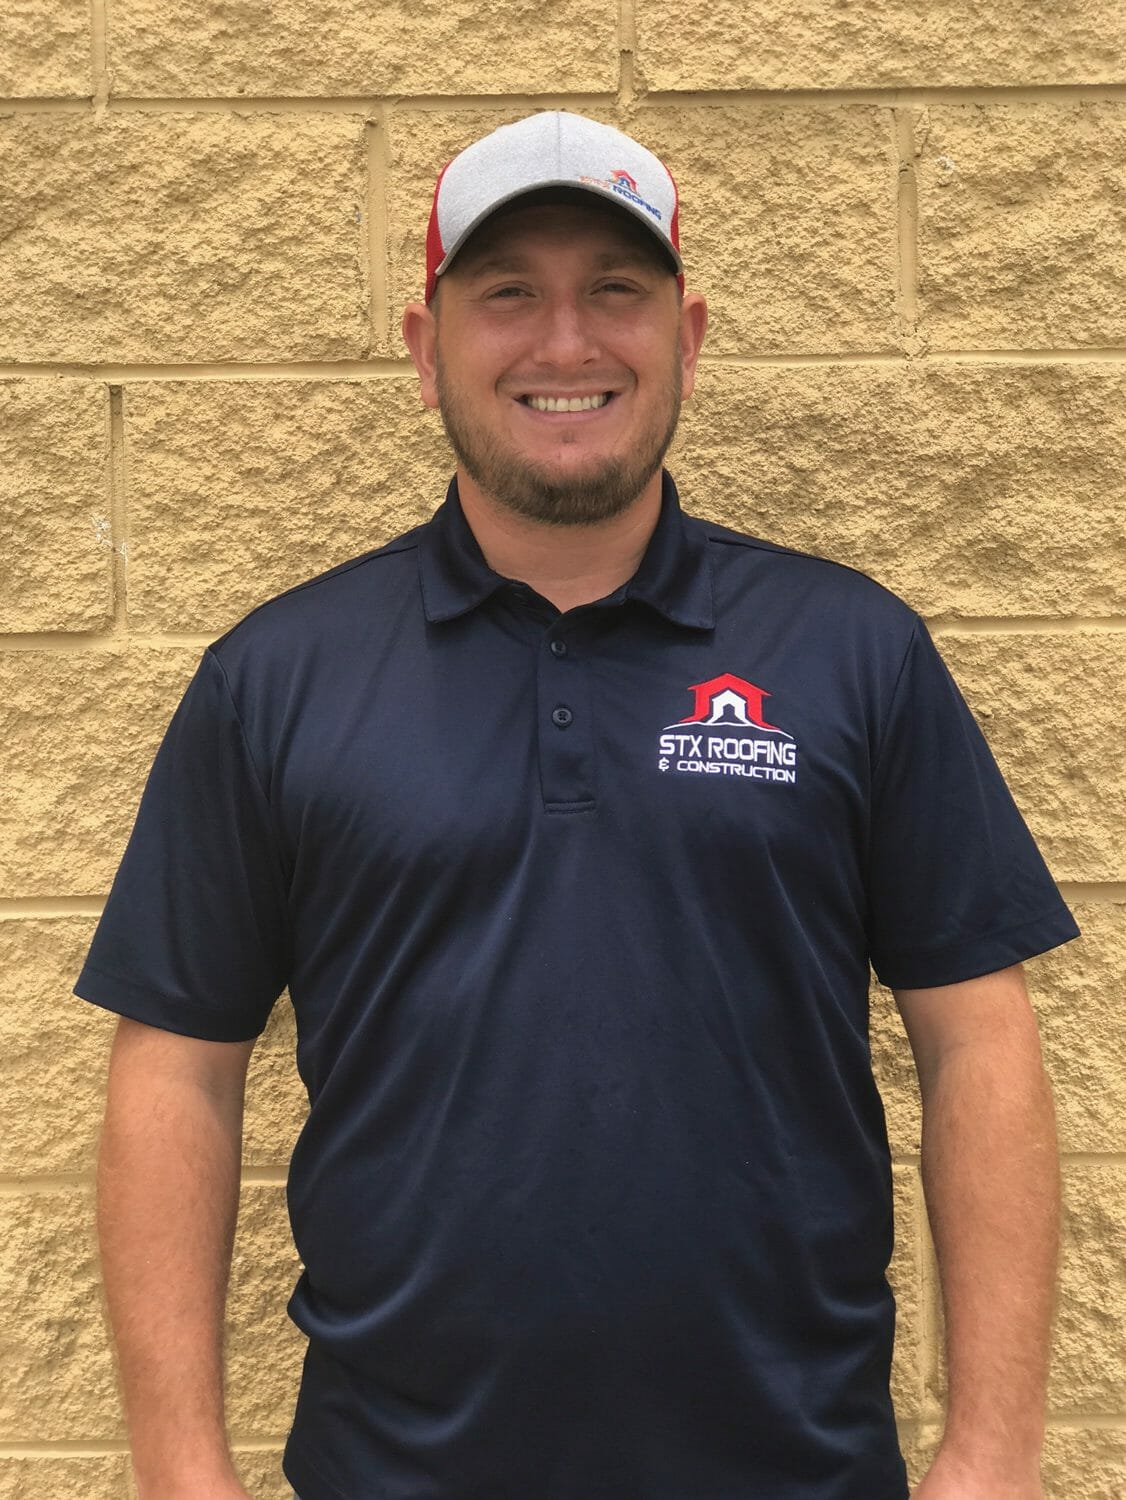 Stx Roofing Owner Stx Roofing